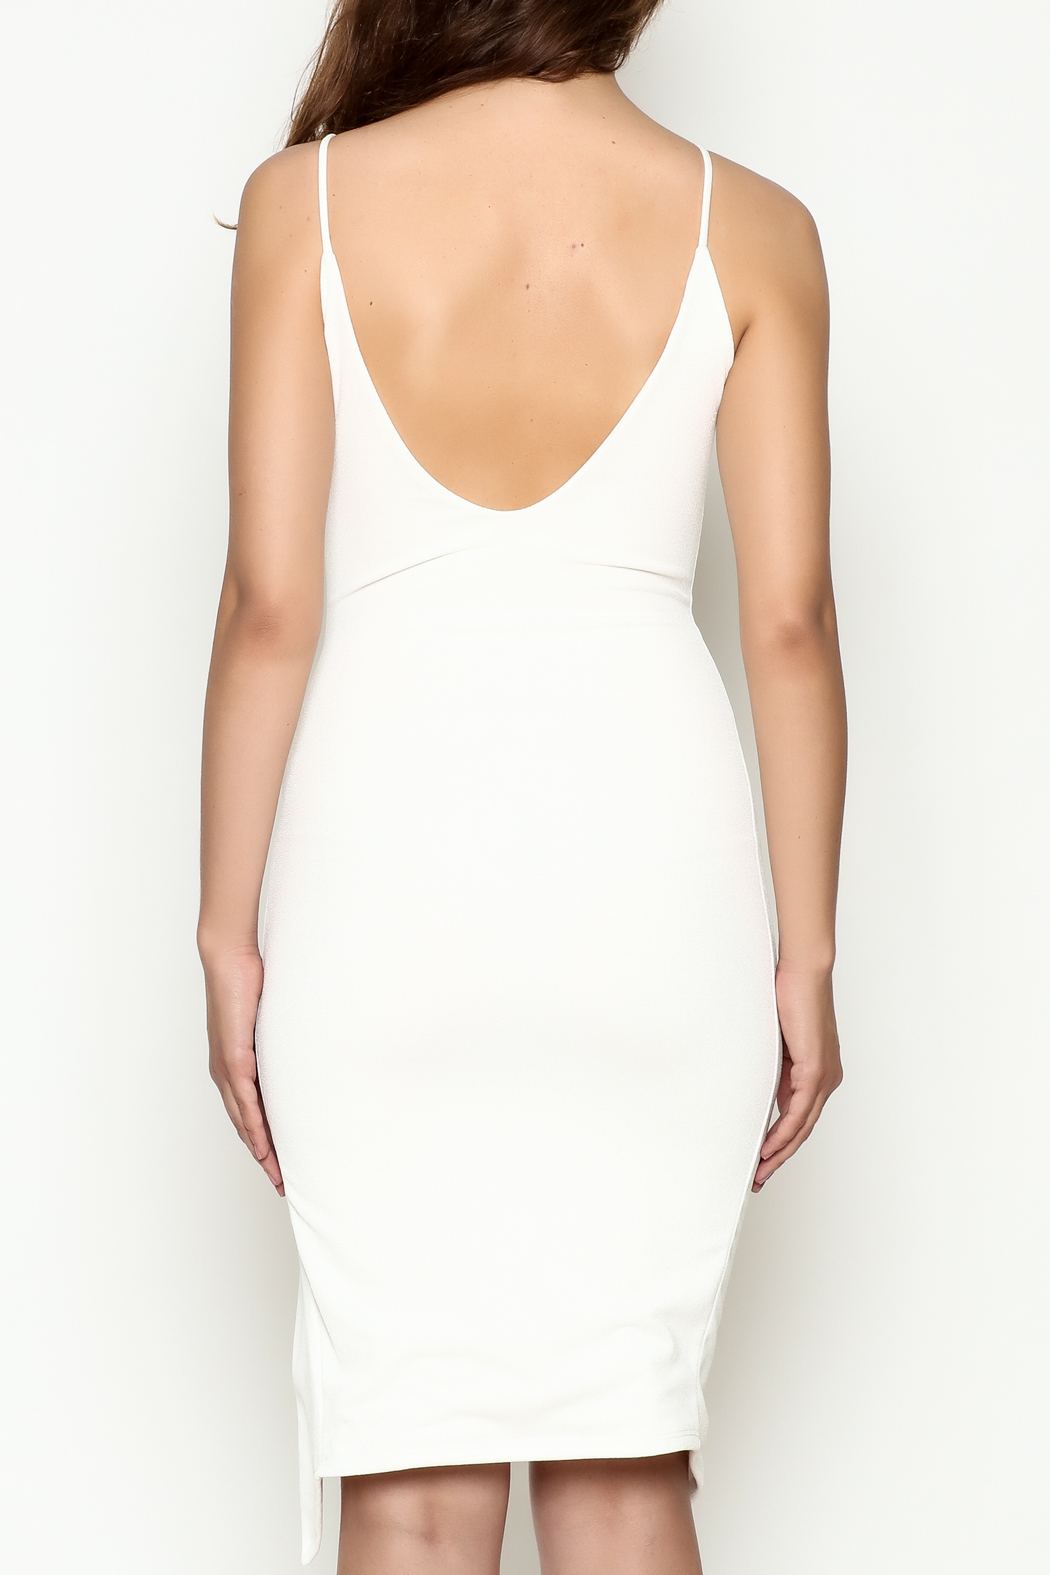 Hot & Delicious Tie Up White Dress - Back Cropped Image